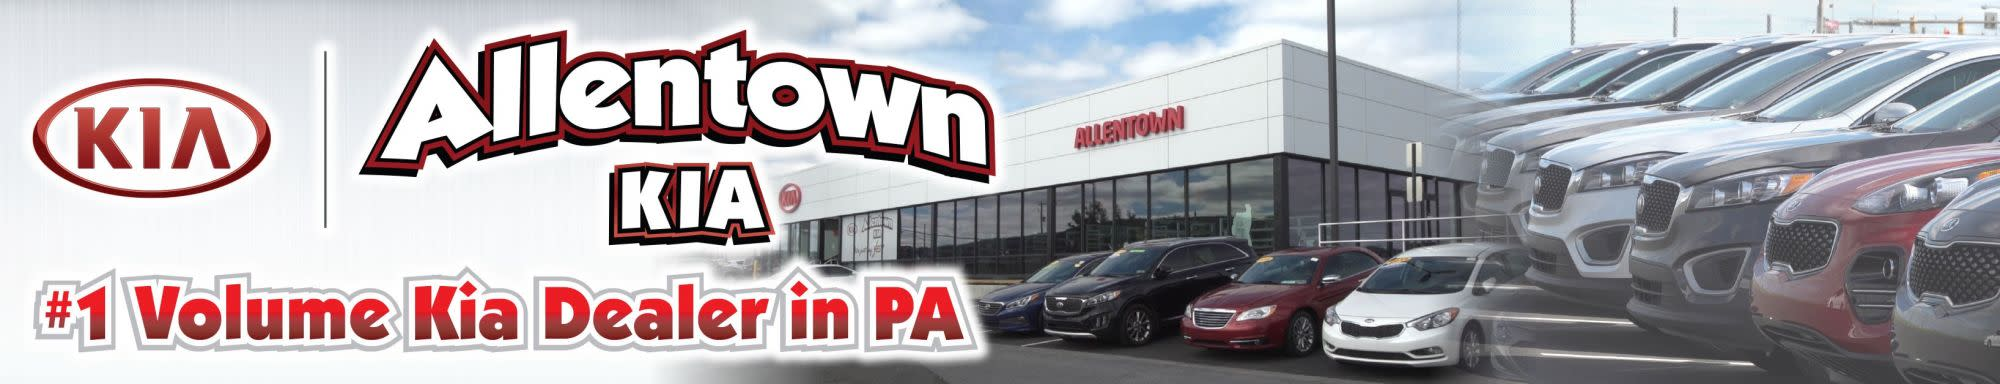 Find a 2019 Kia Optima at Allentown Kia!